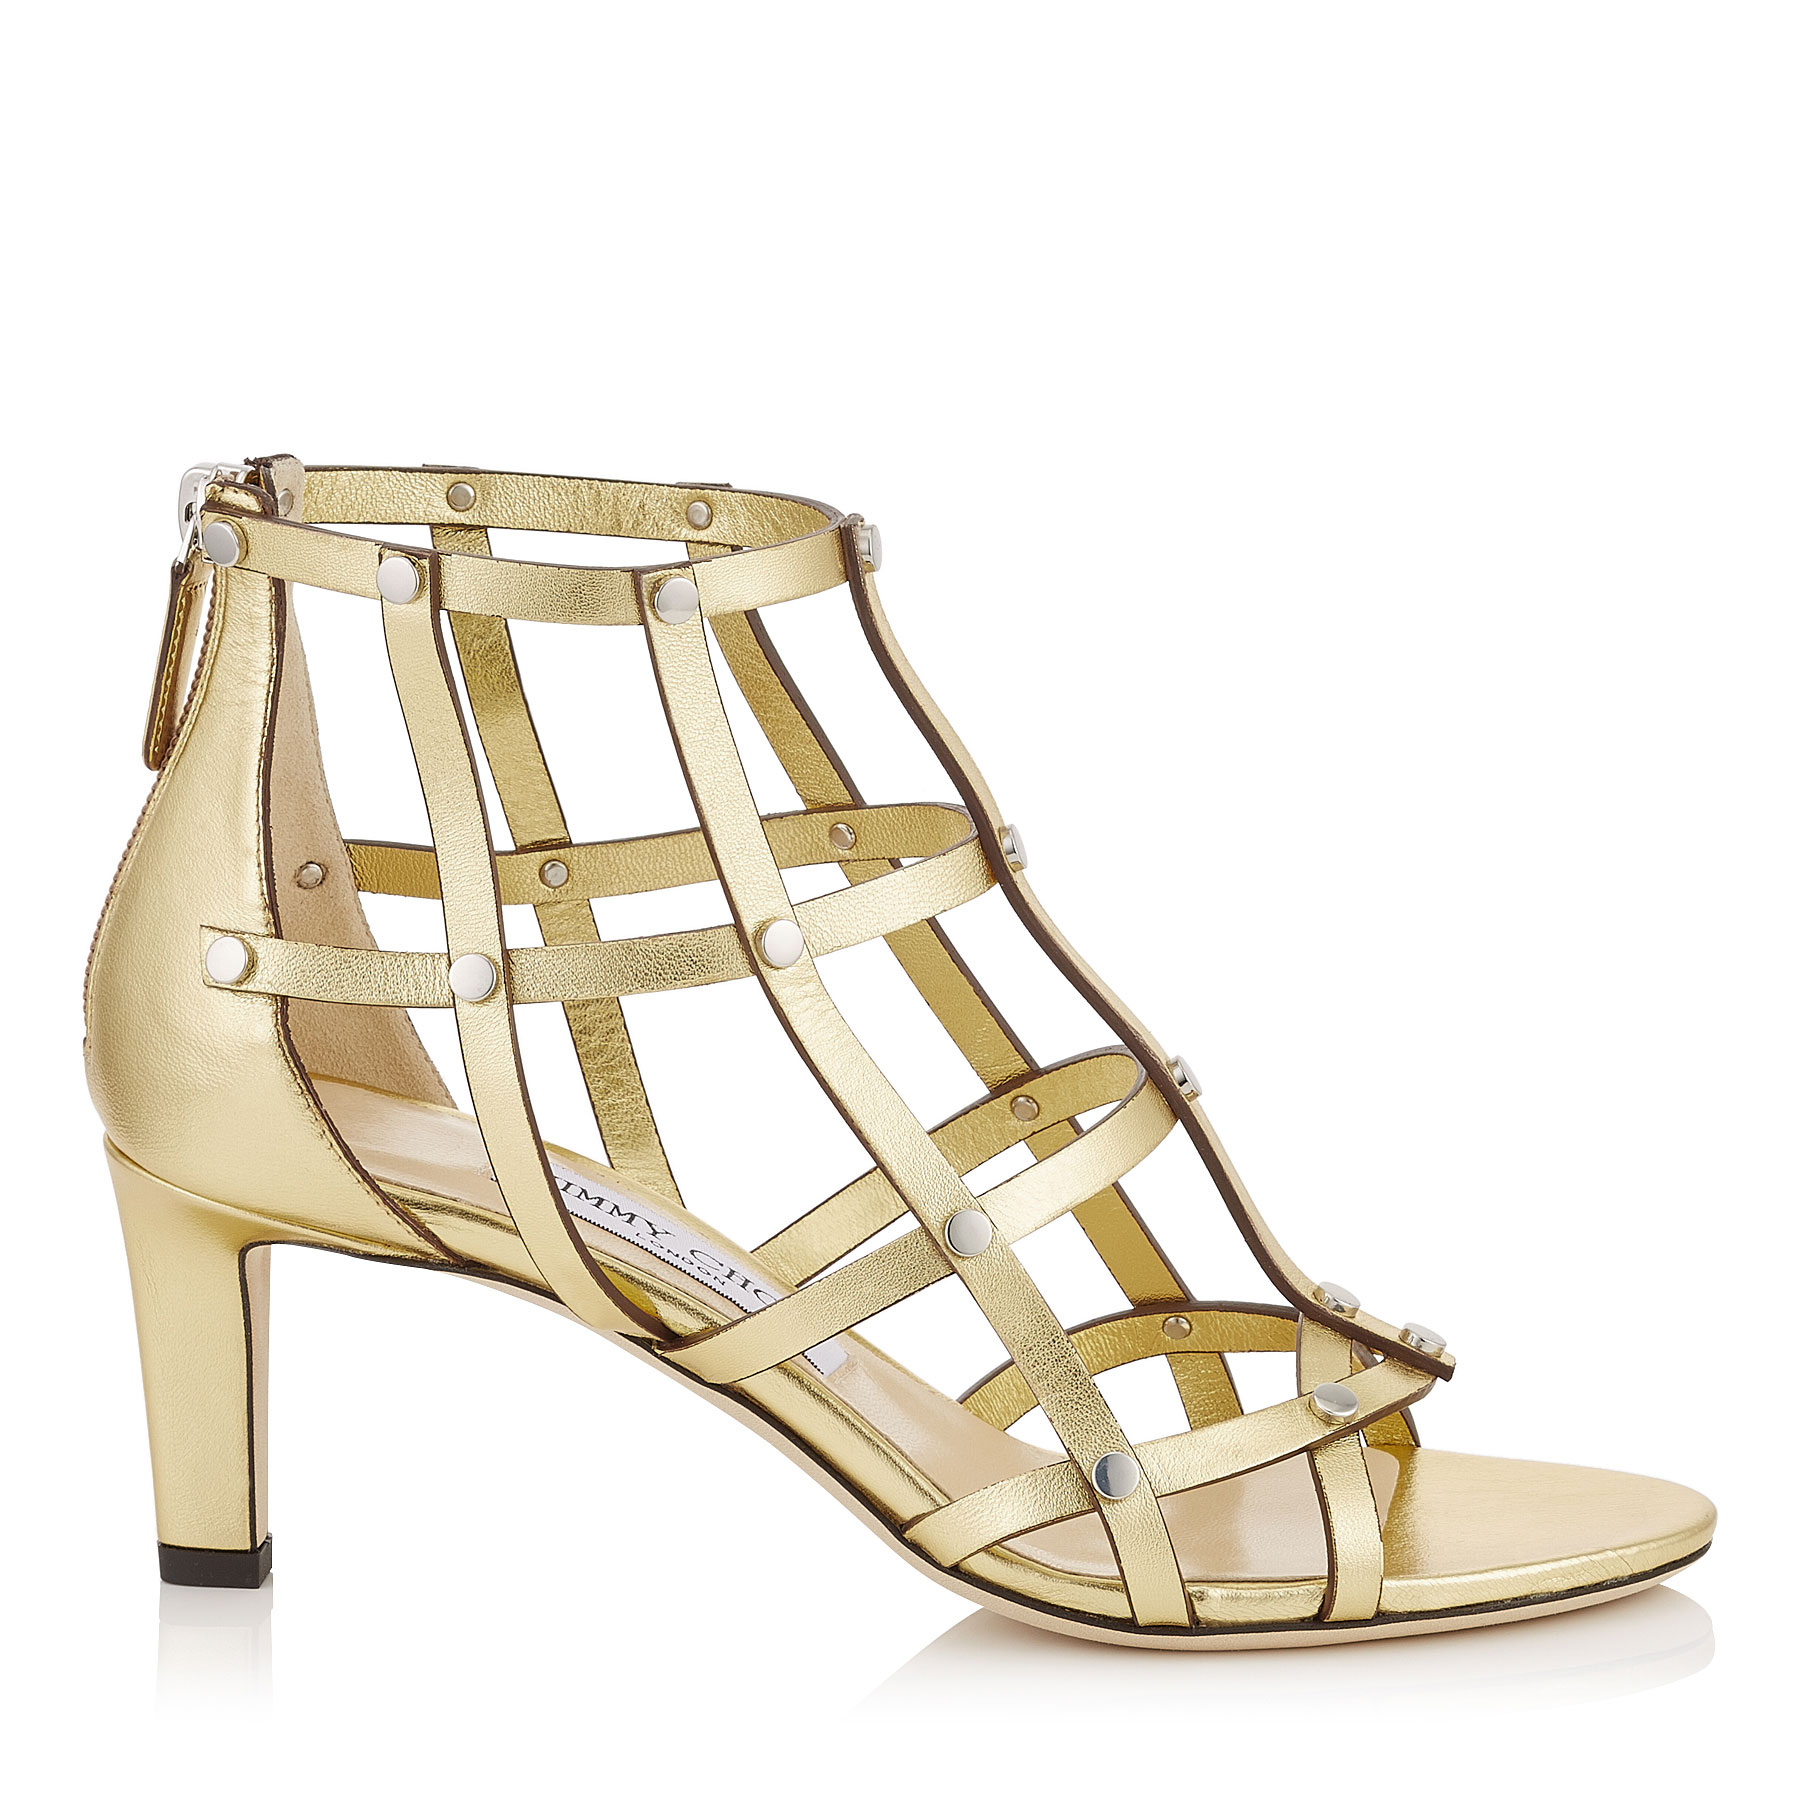 TINA 65 Roman Gold Metallic Nappa Sandals with Silver Studs by Jimmy Choo